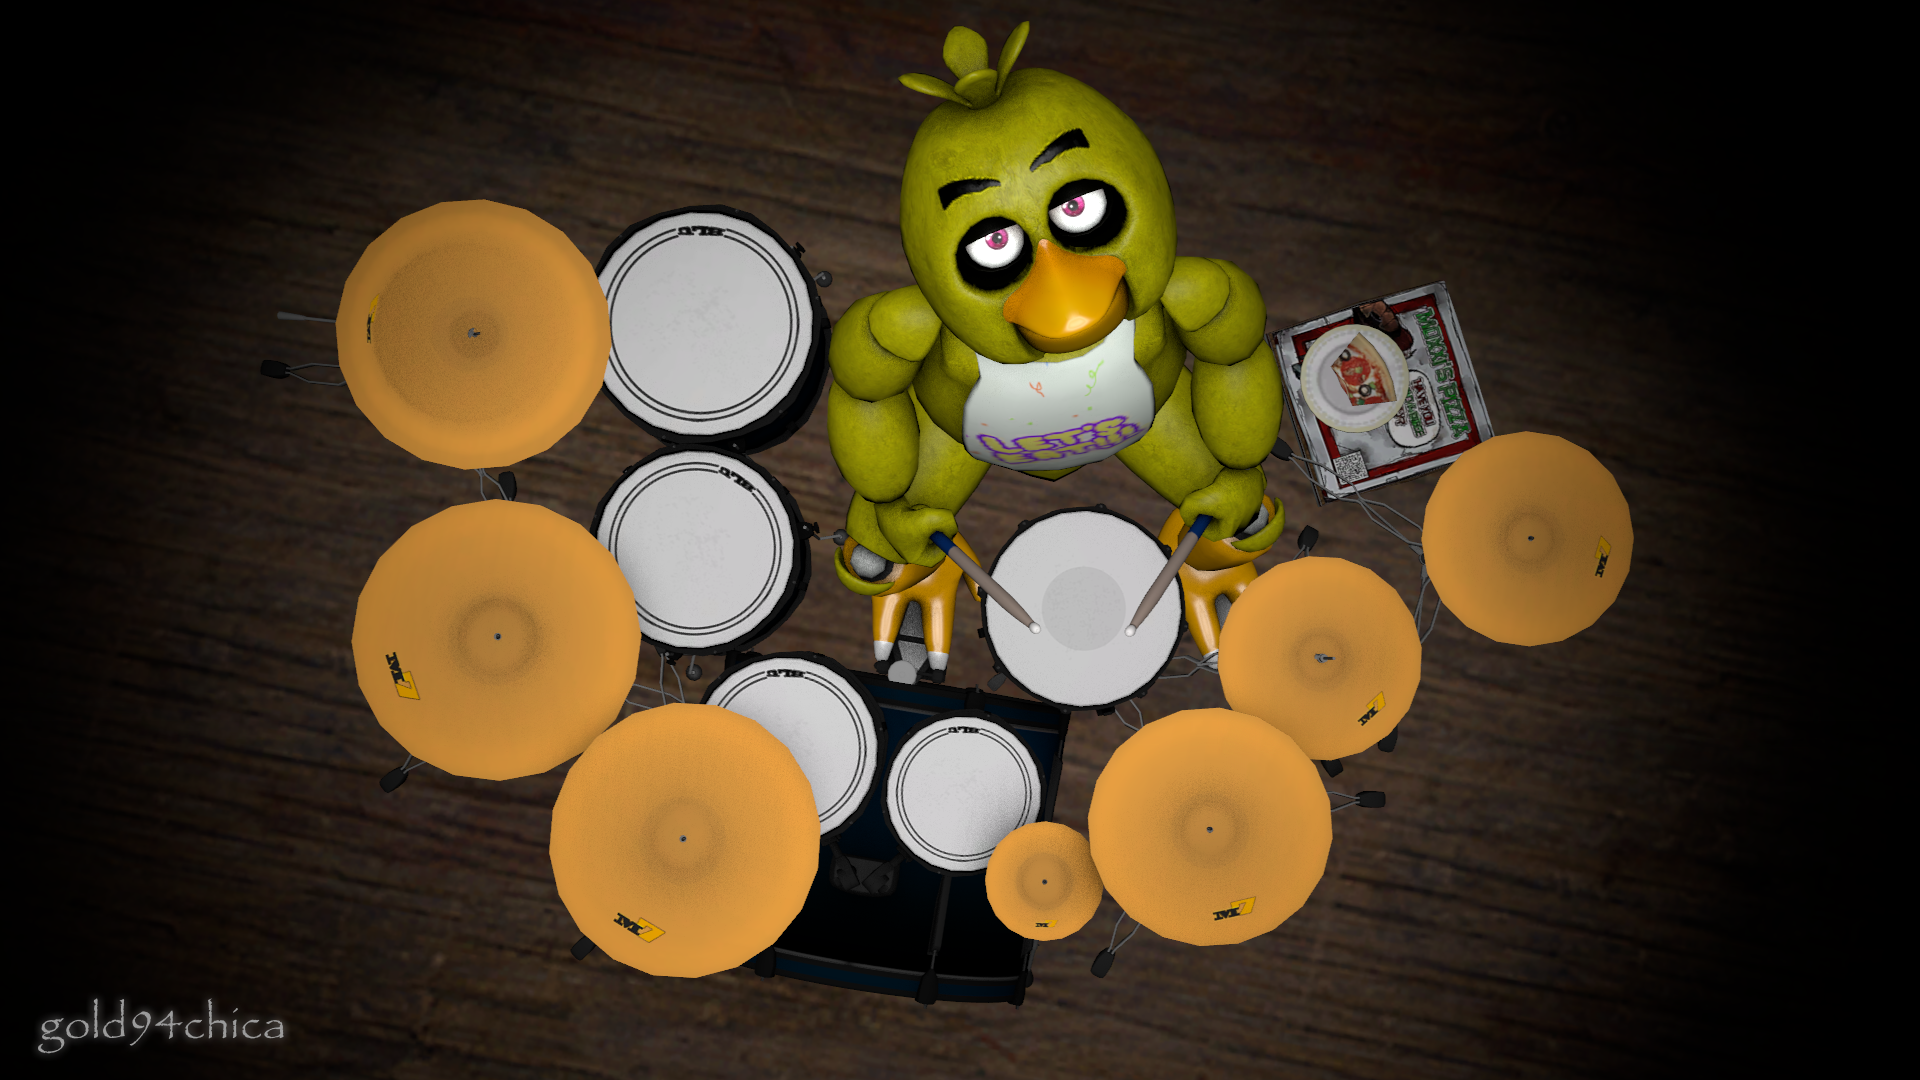 Chica s drumset sfm wallpaper by gold94chica on deviantart